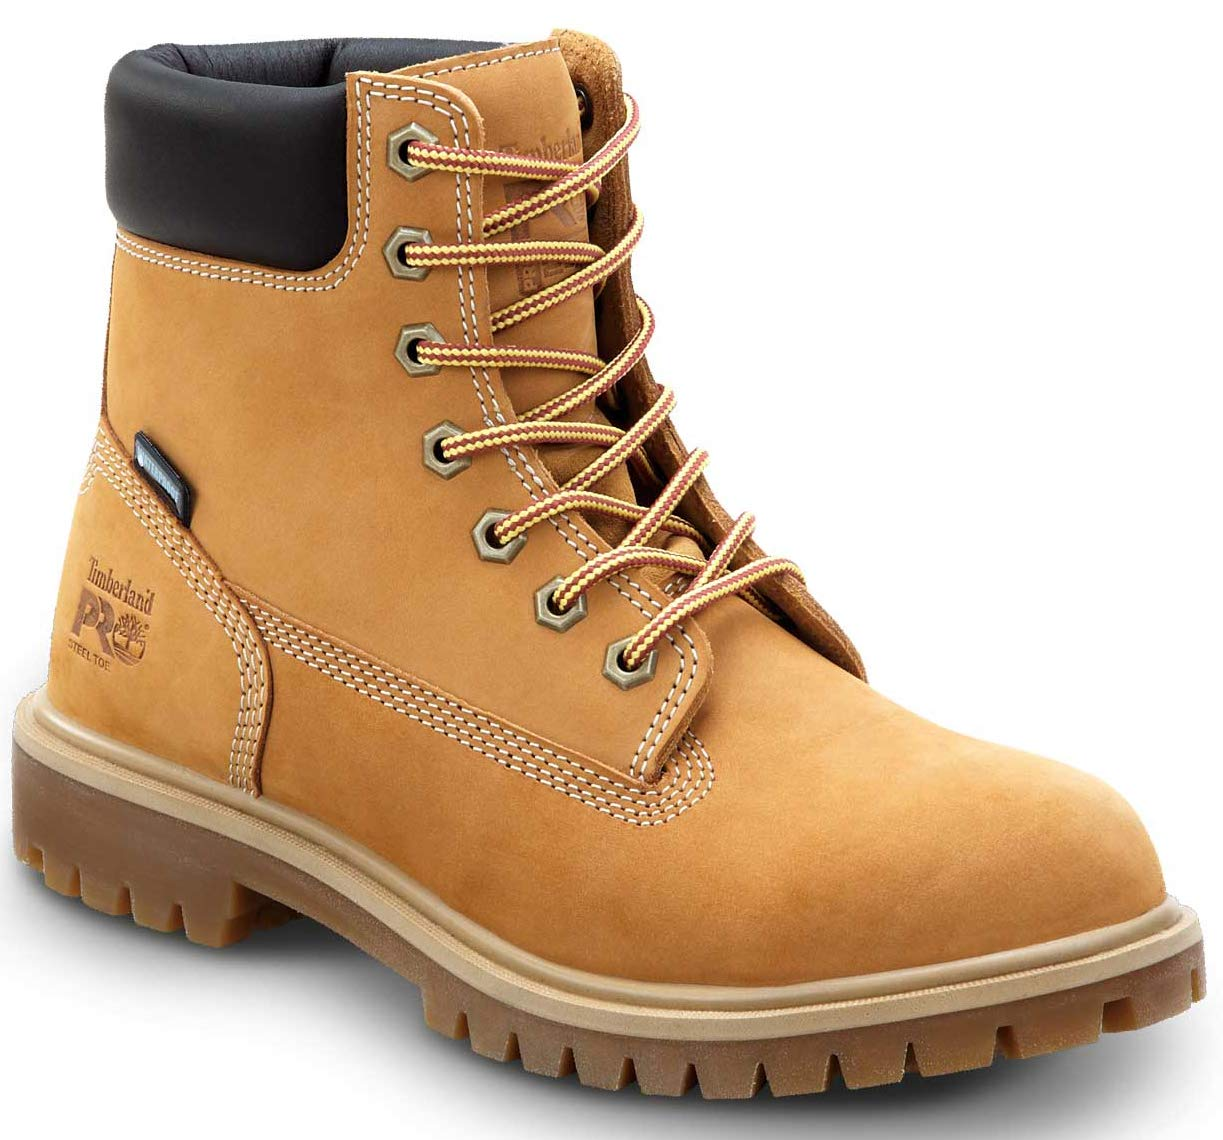 Timberland PRO 6-inch Direct Attach Women's Steel Toe Boot (7.5 M) by Timberland PRO